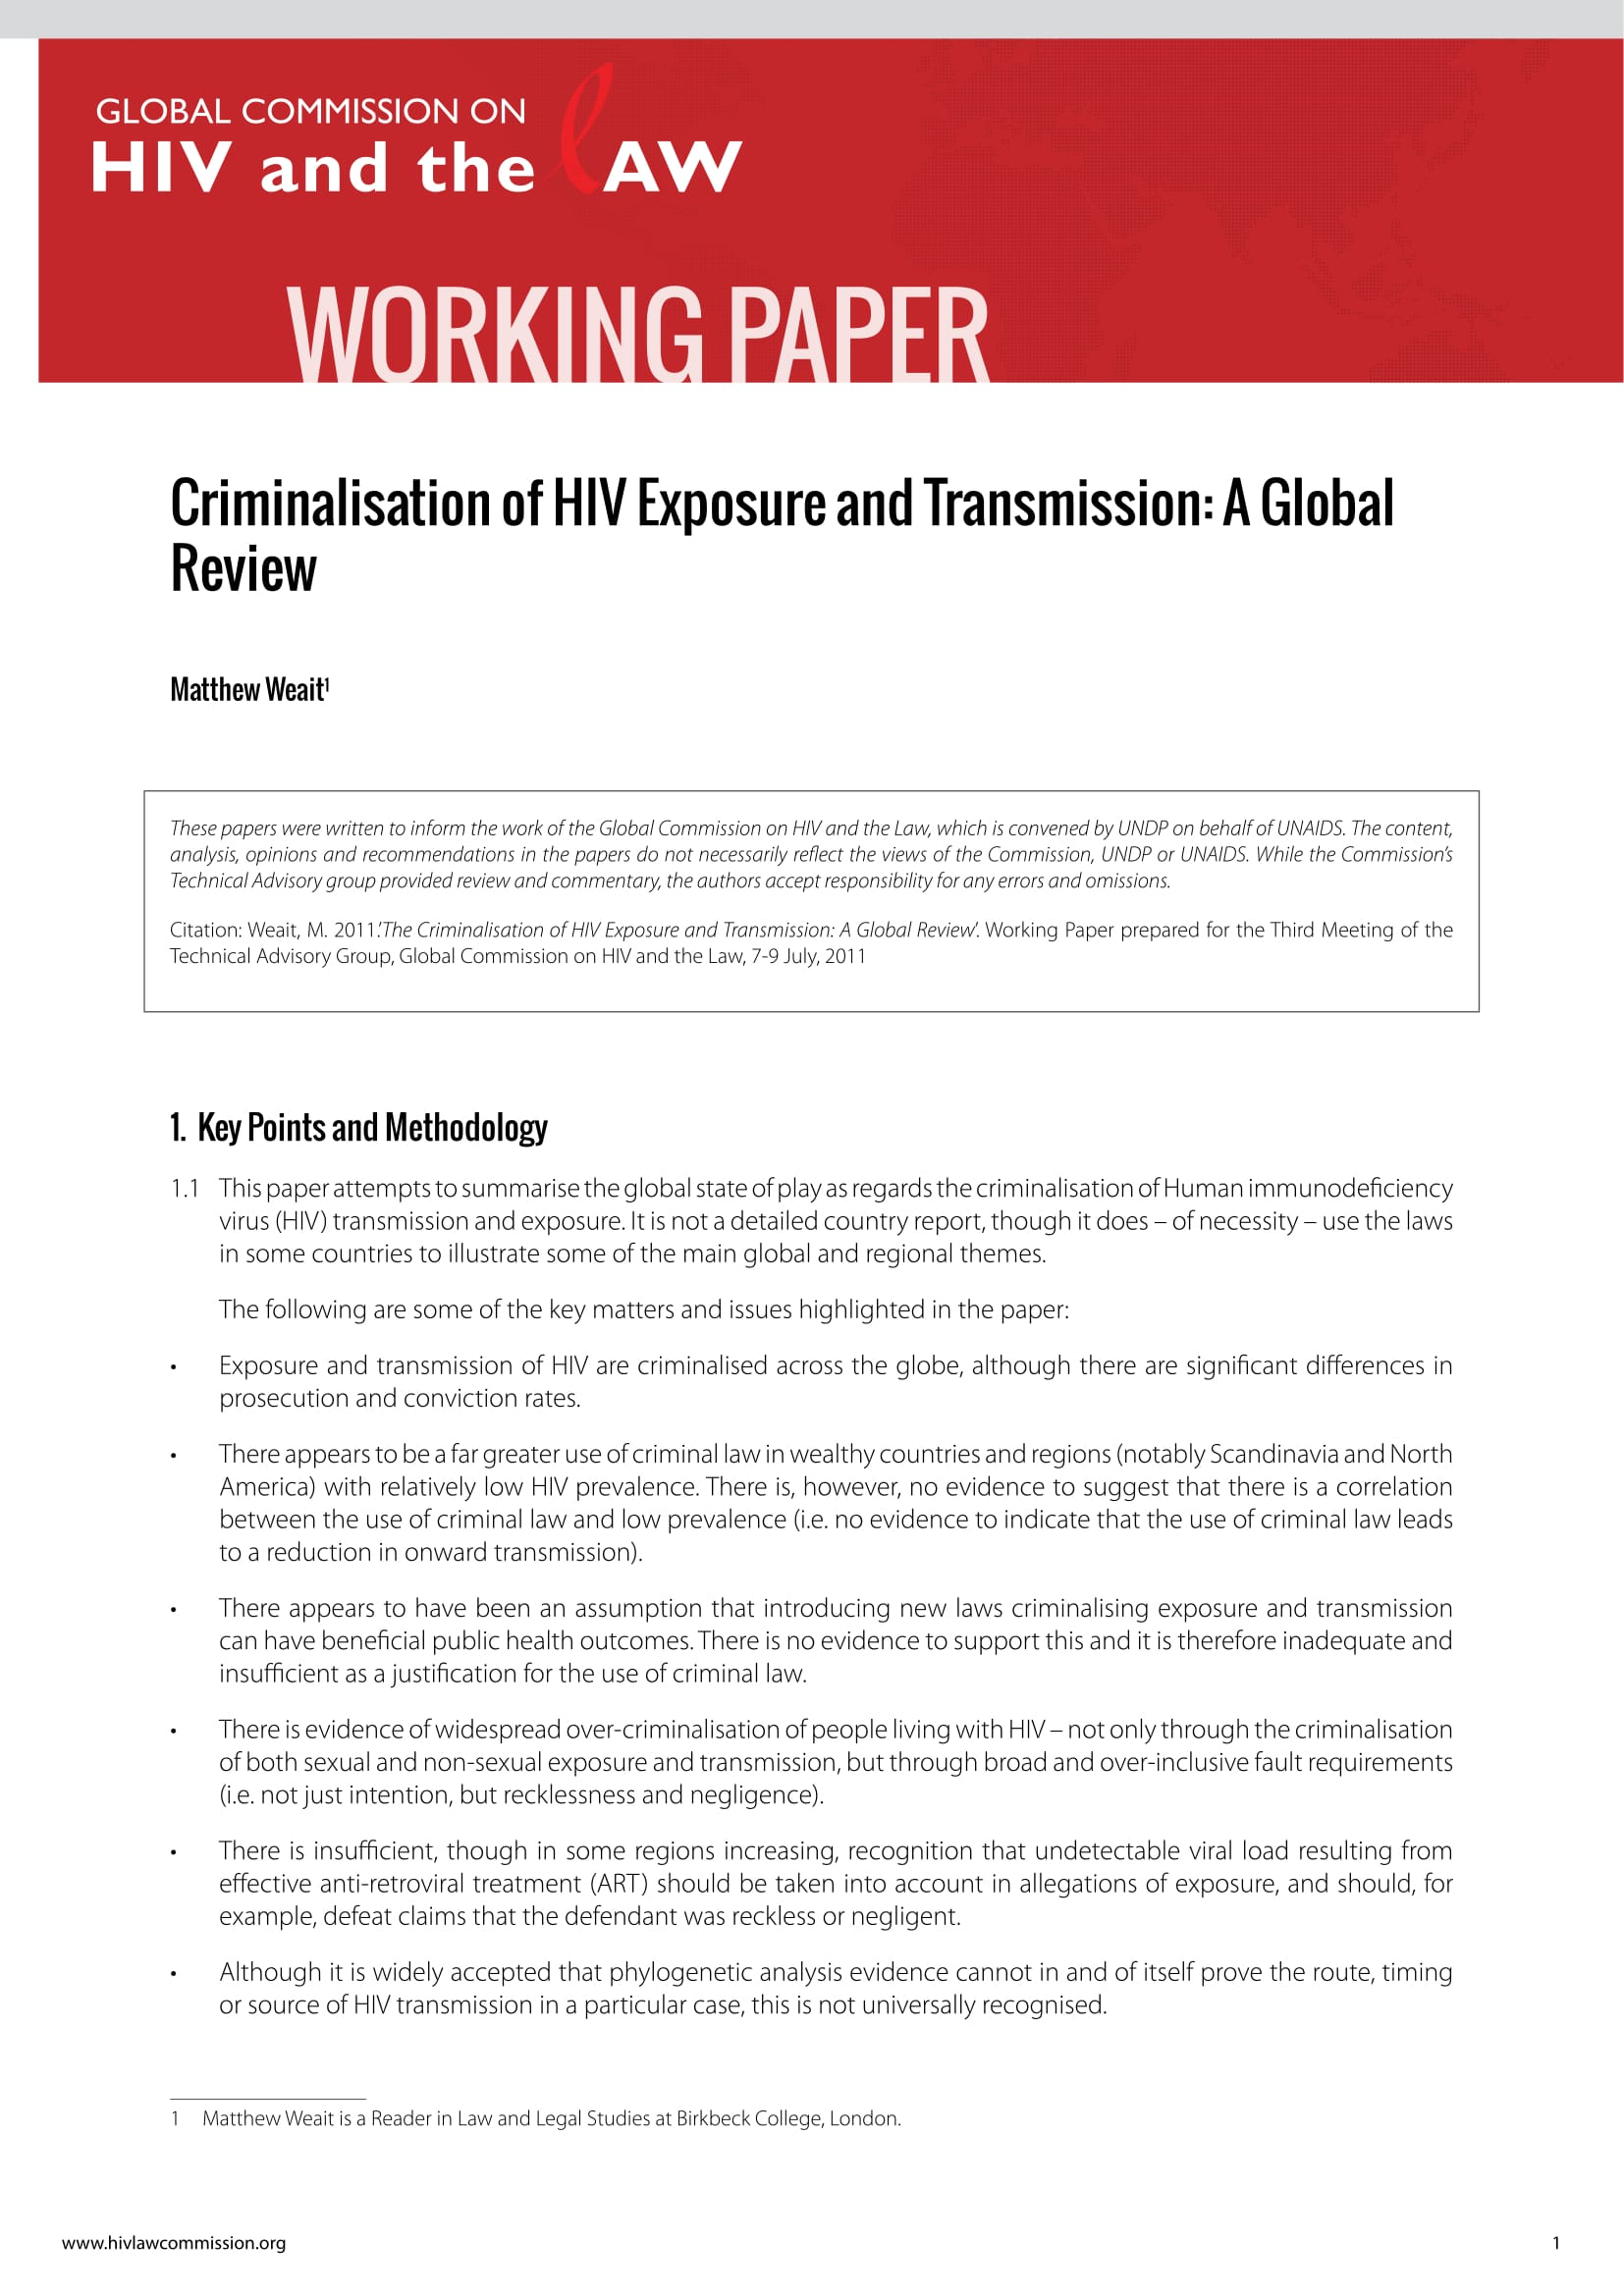 The Criminalisation of HIV Exposure and Transmission: A Global Review